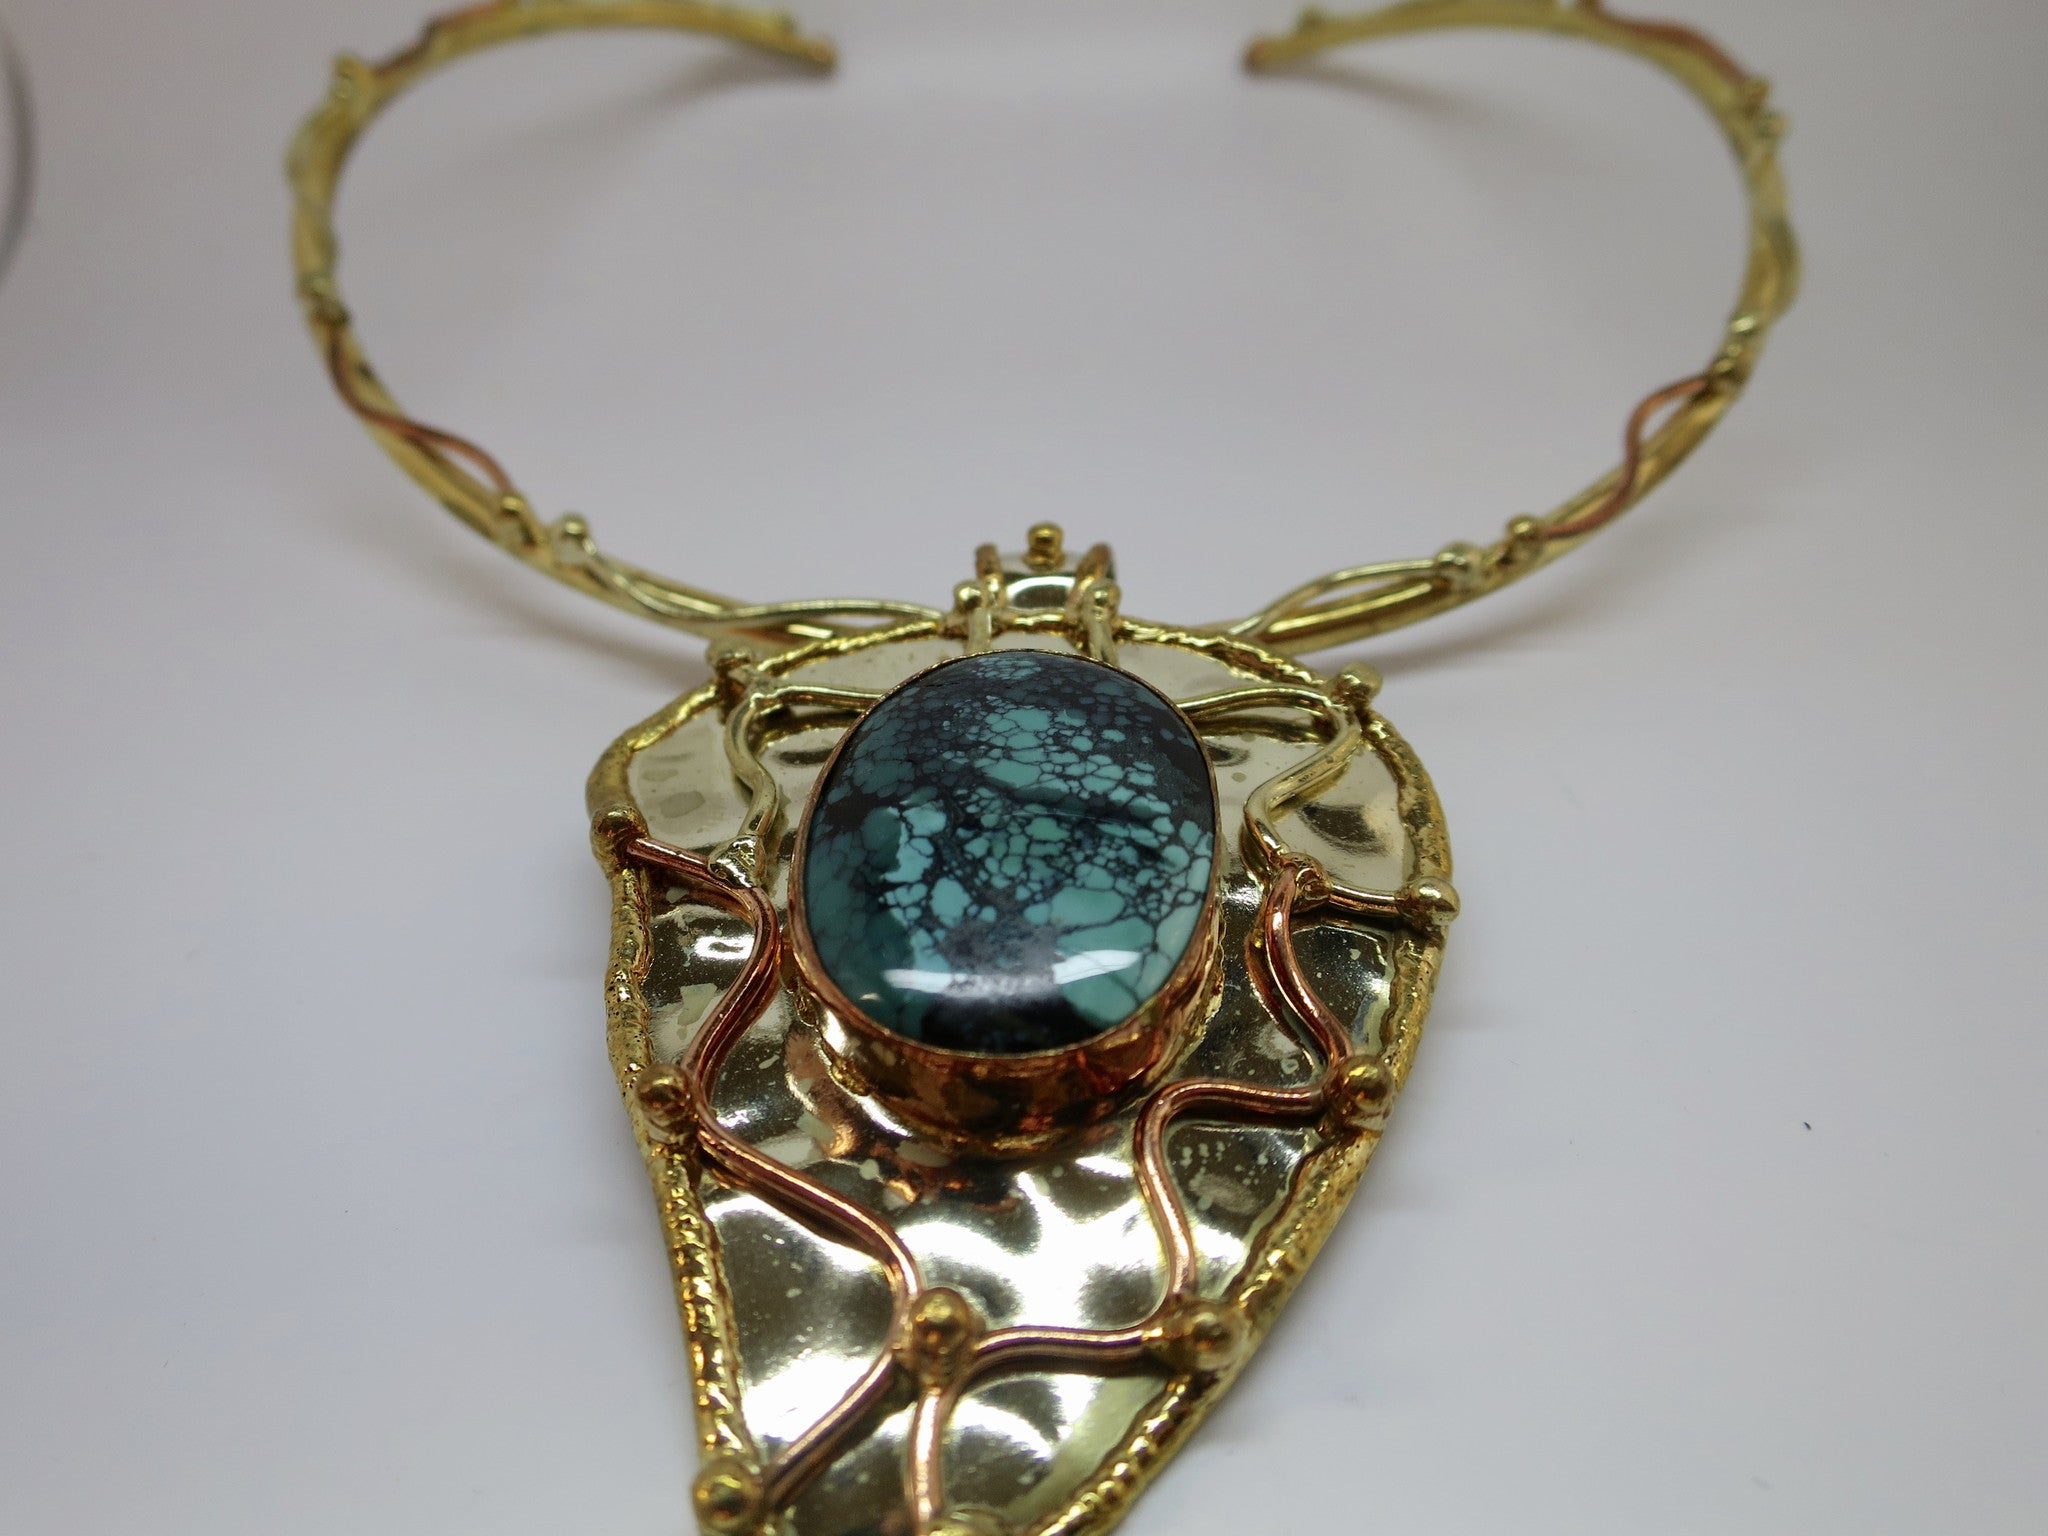 Allura Power Gems-Genuine Turquoise Brass & Copper Leaf Pendant - Pretty Princess Style  - 3